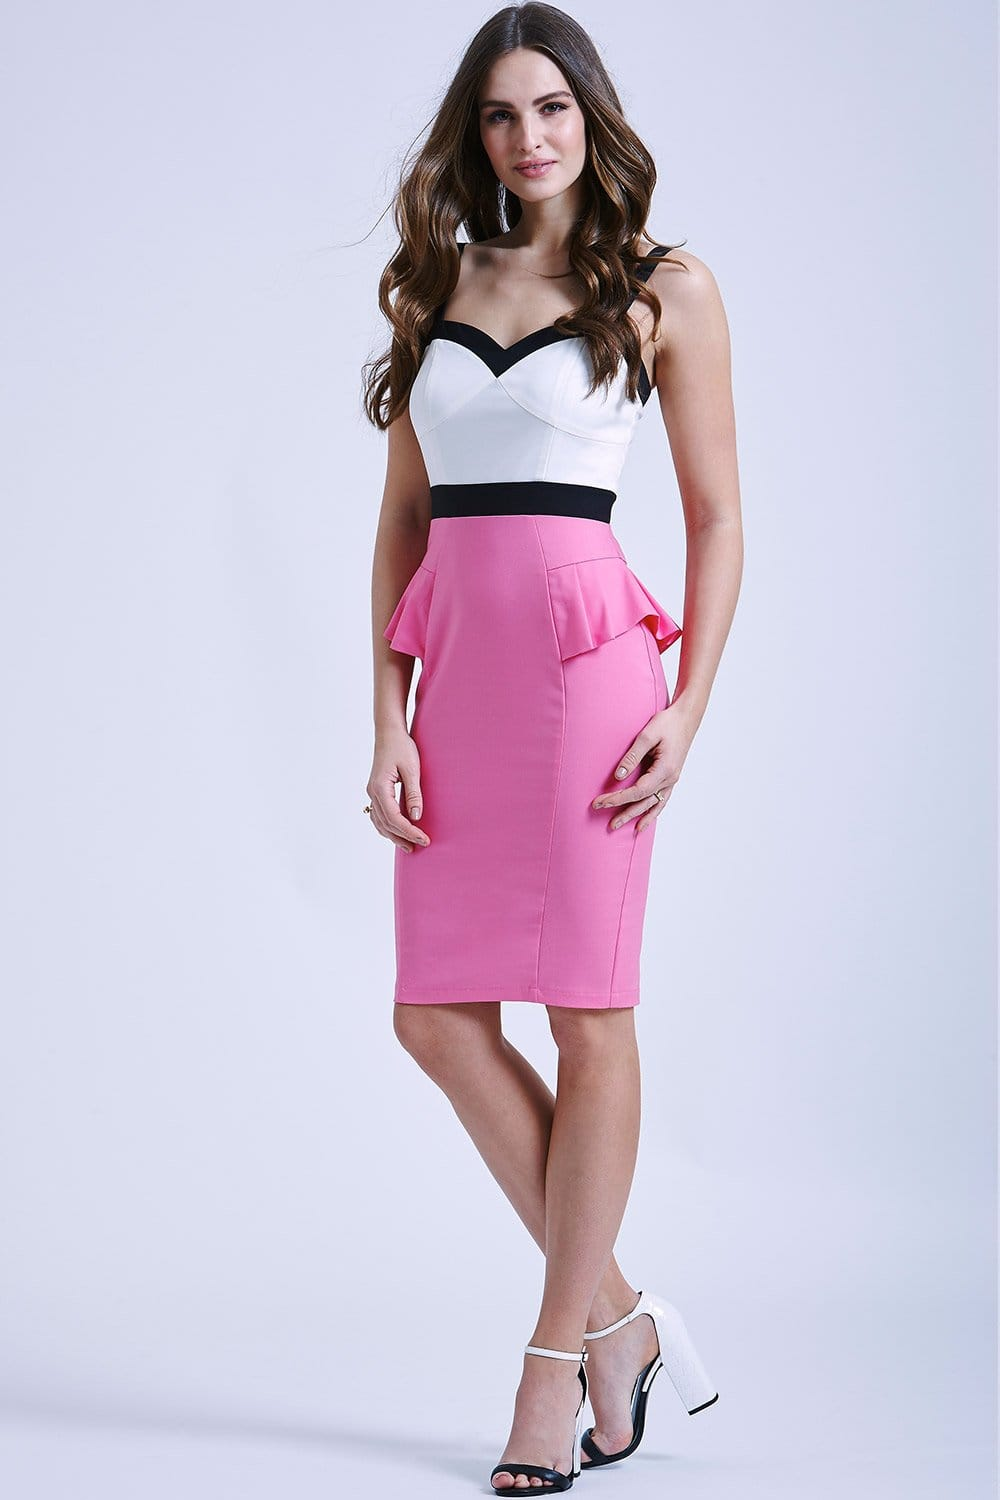 White, Pink and Black Peplum Dress